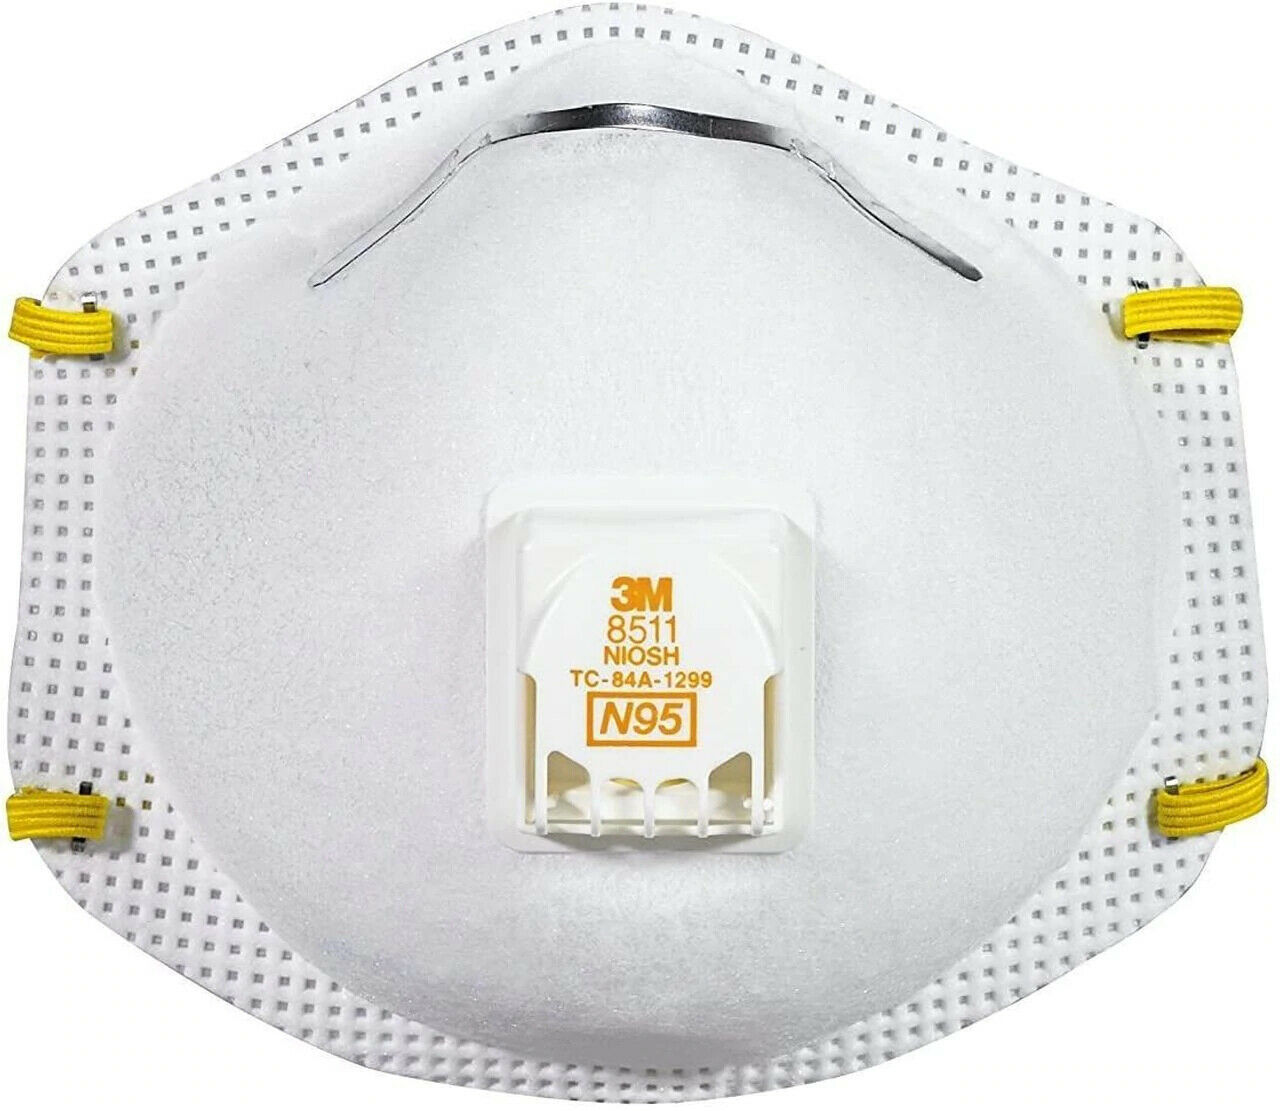 1 EACH- 3M 8511 N95 Particulate Respirator Face Mask W/Exhalation Valve EXP 2026 Business & Industrial